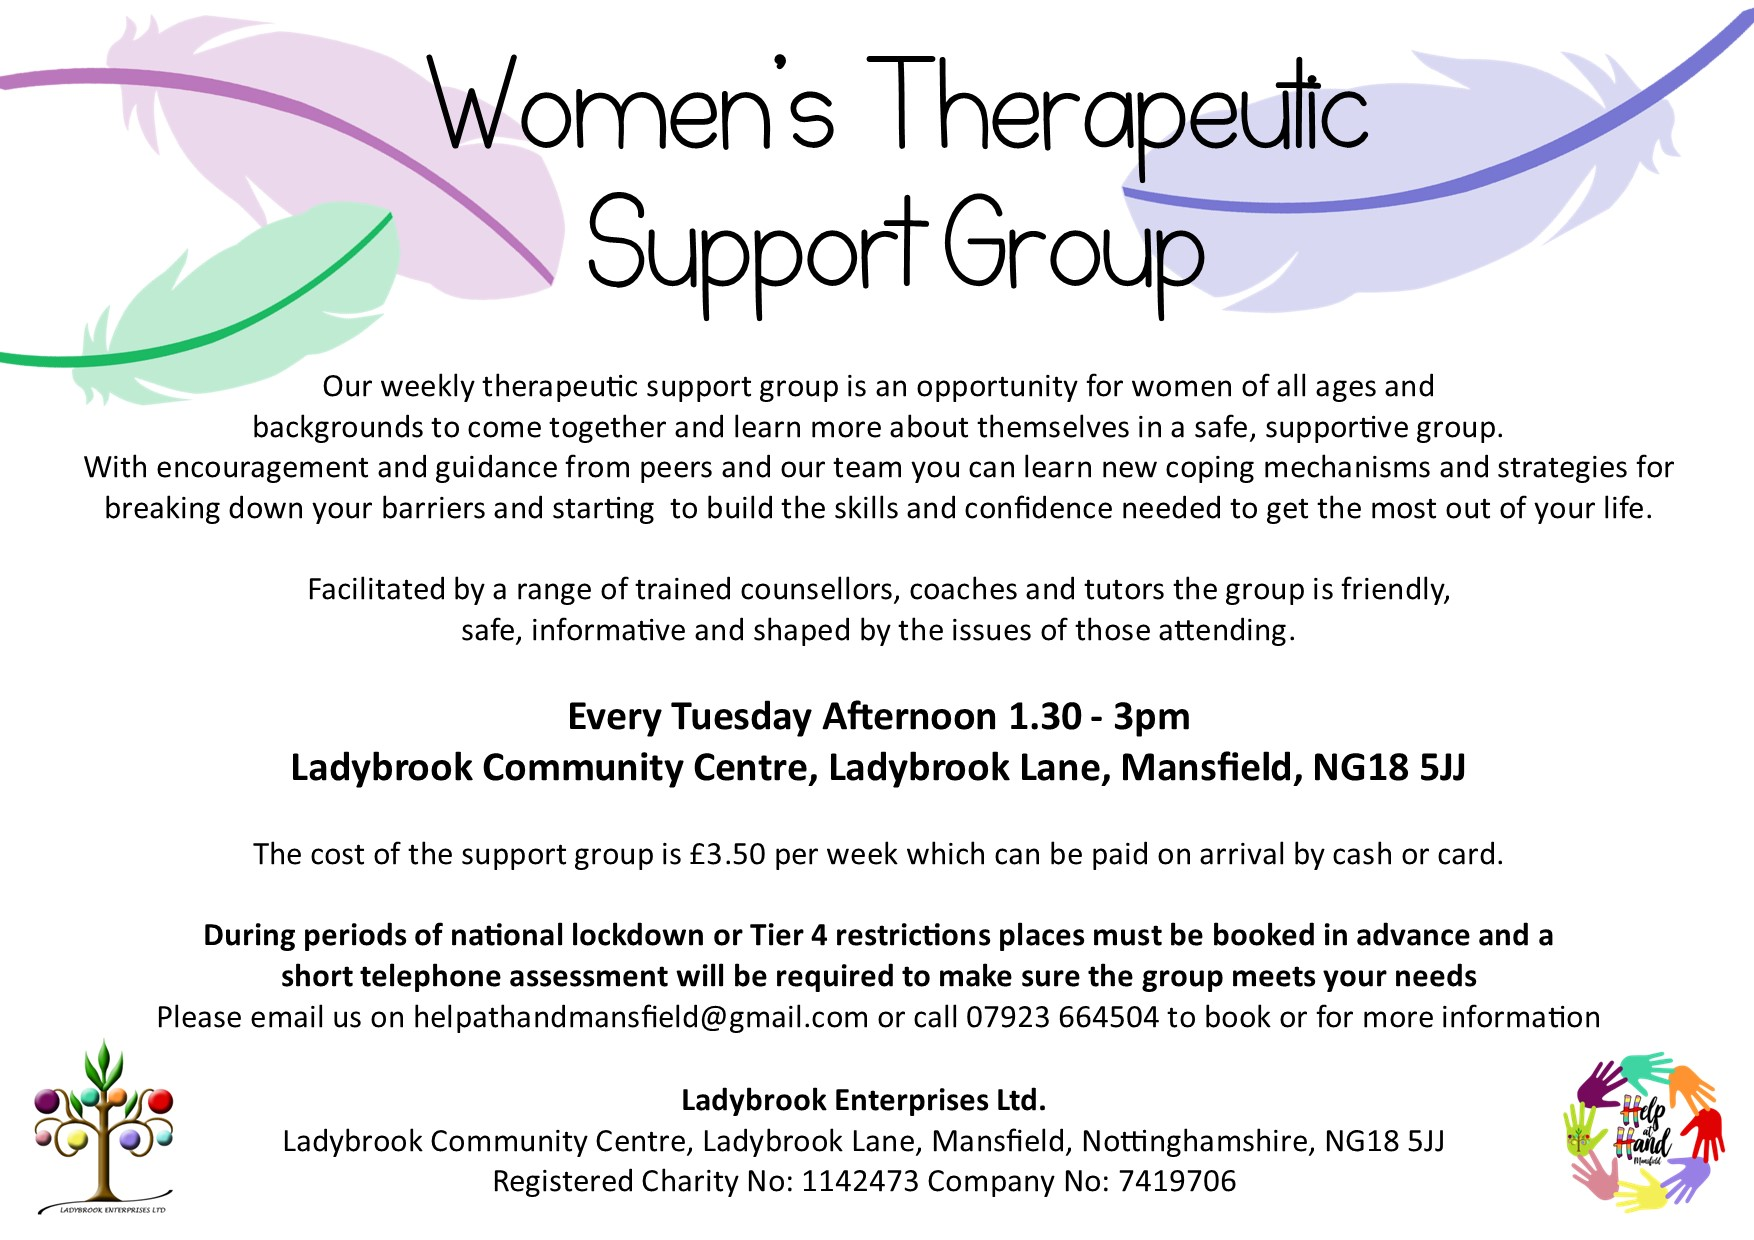 womens therapeutic support group